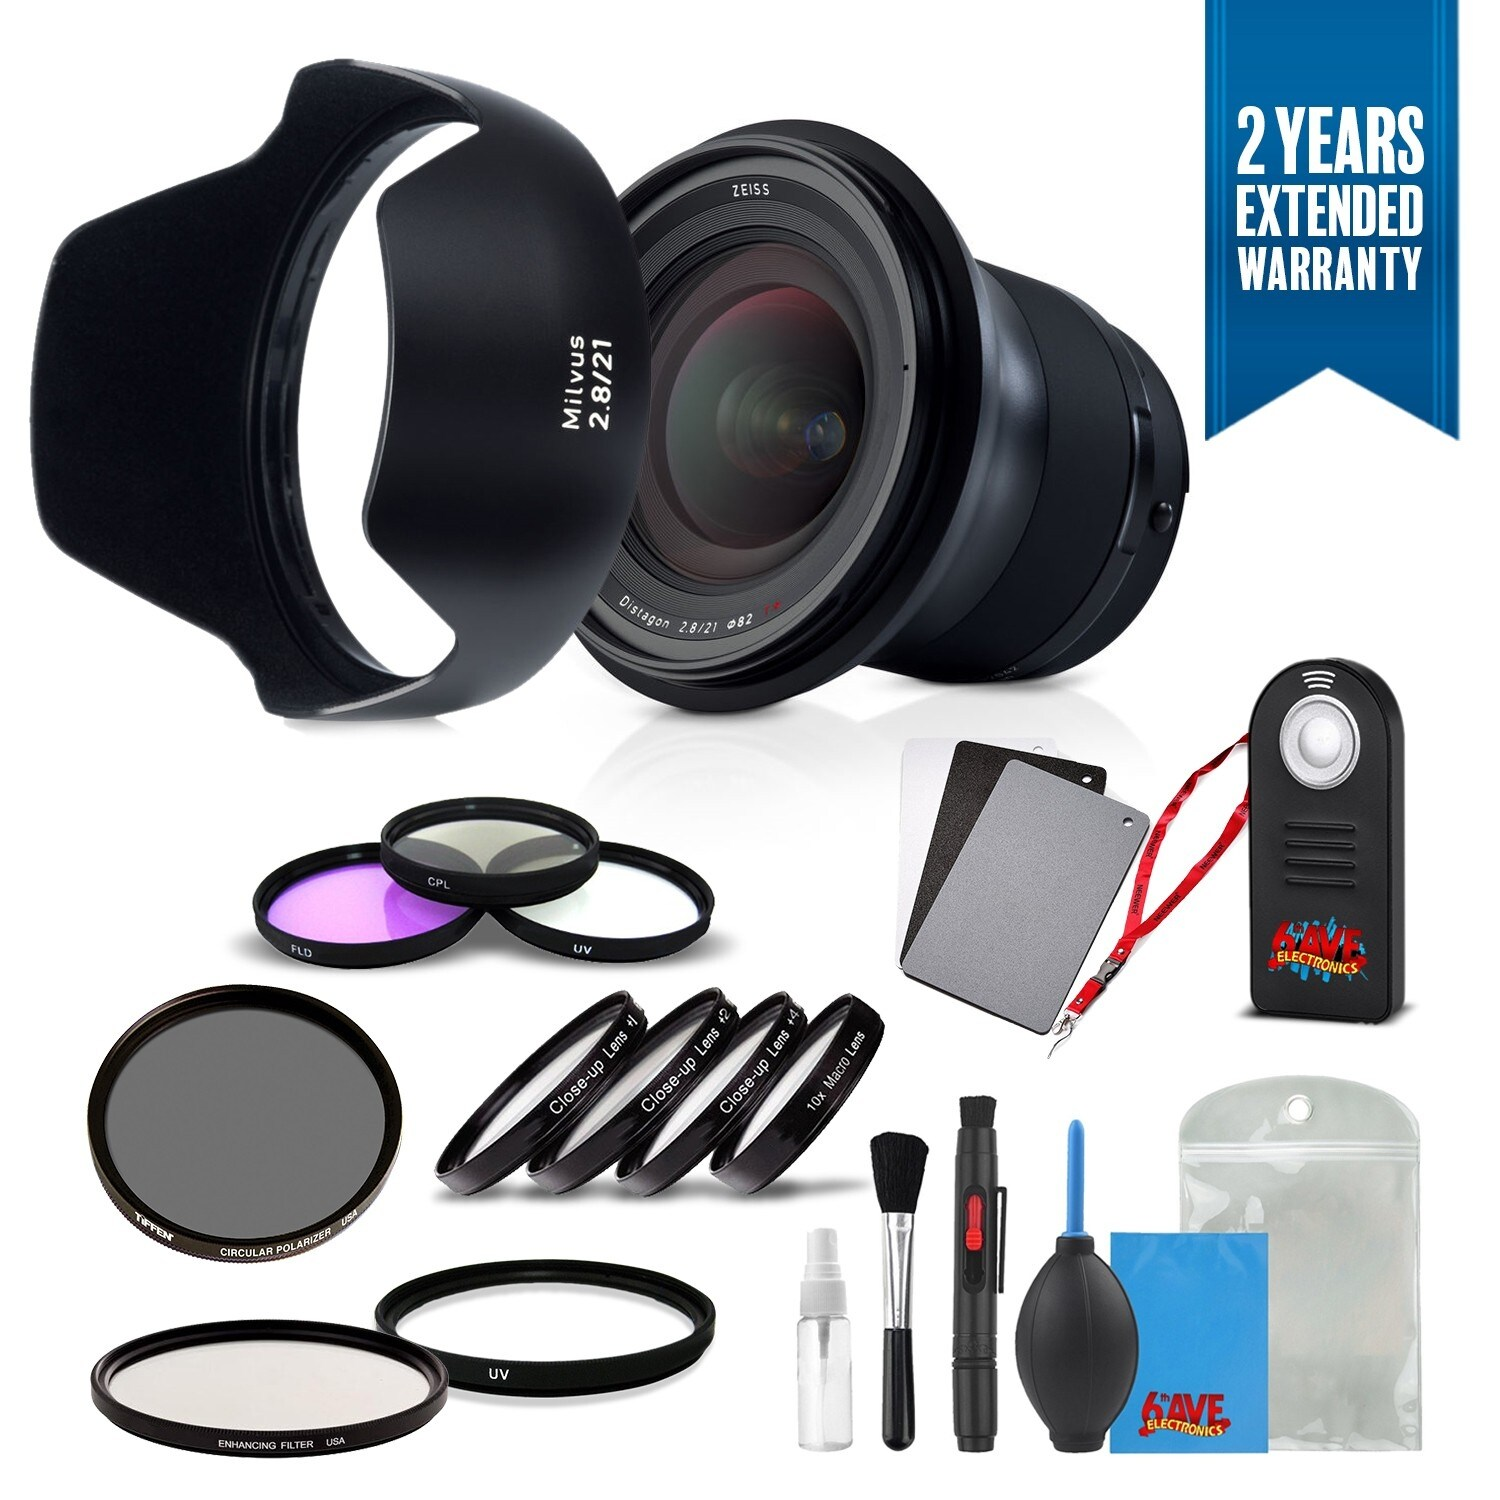 Zeiss Milvus 21mm f/2 8 ZF 2 Lens for Nikon F - (2096-548) with Cleaning  Accessory Kit and 2 Year Extended Warranty